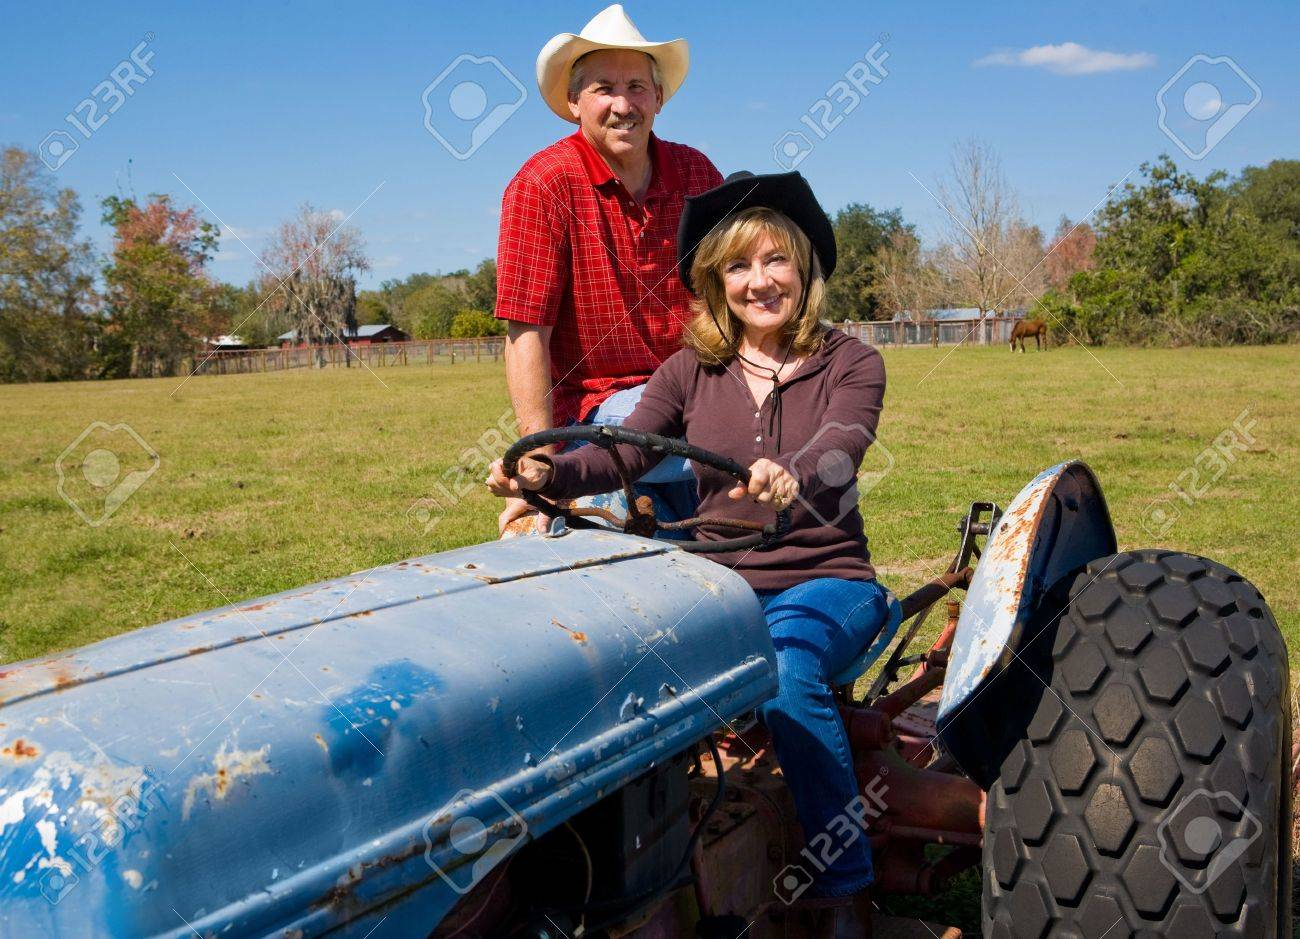 Beautiful mature couple riding a tractor on their farm. Stock Photo - 3206458